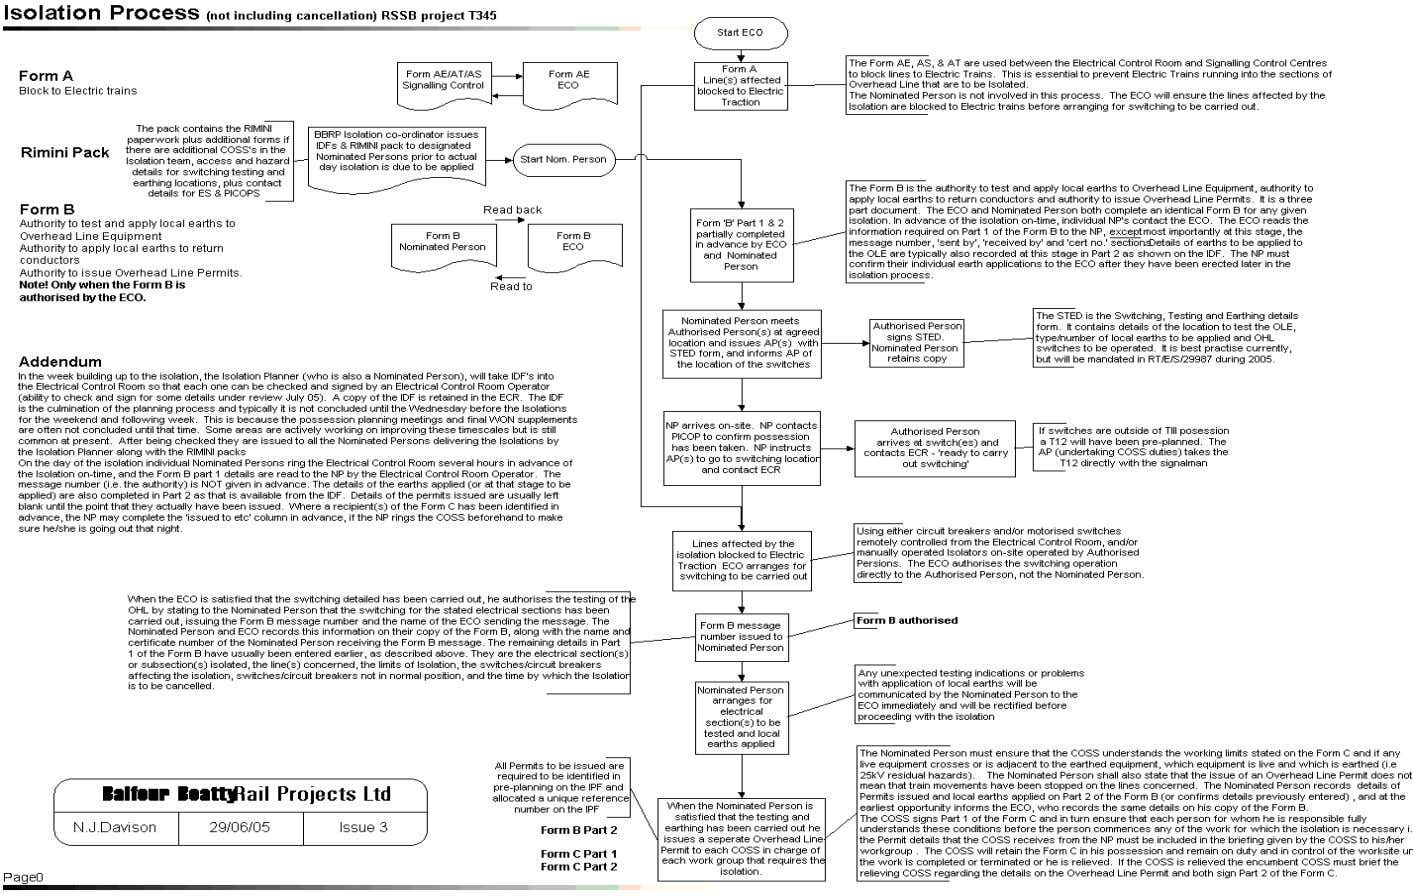 4.3 Isolation Process Flowchart Report No. 2 Issue 1. Page 14 of 127